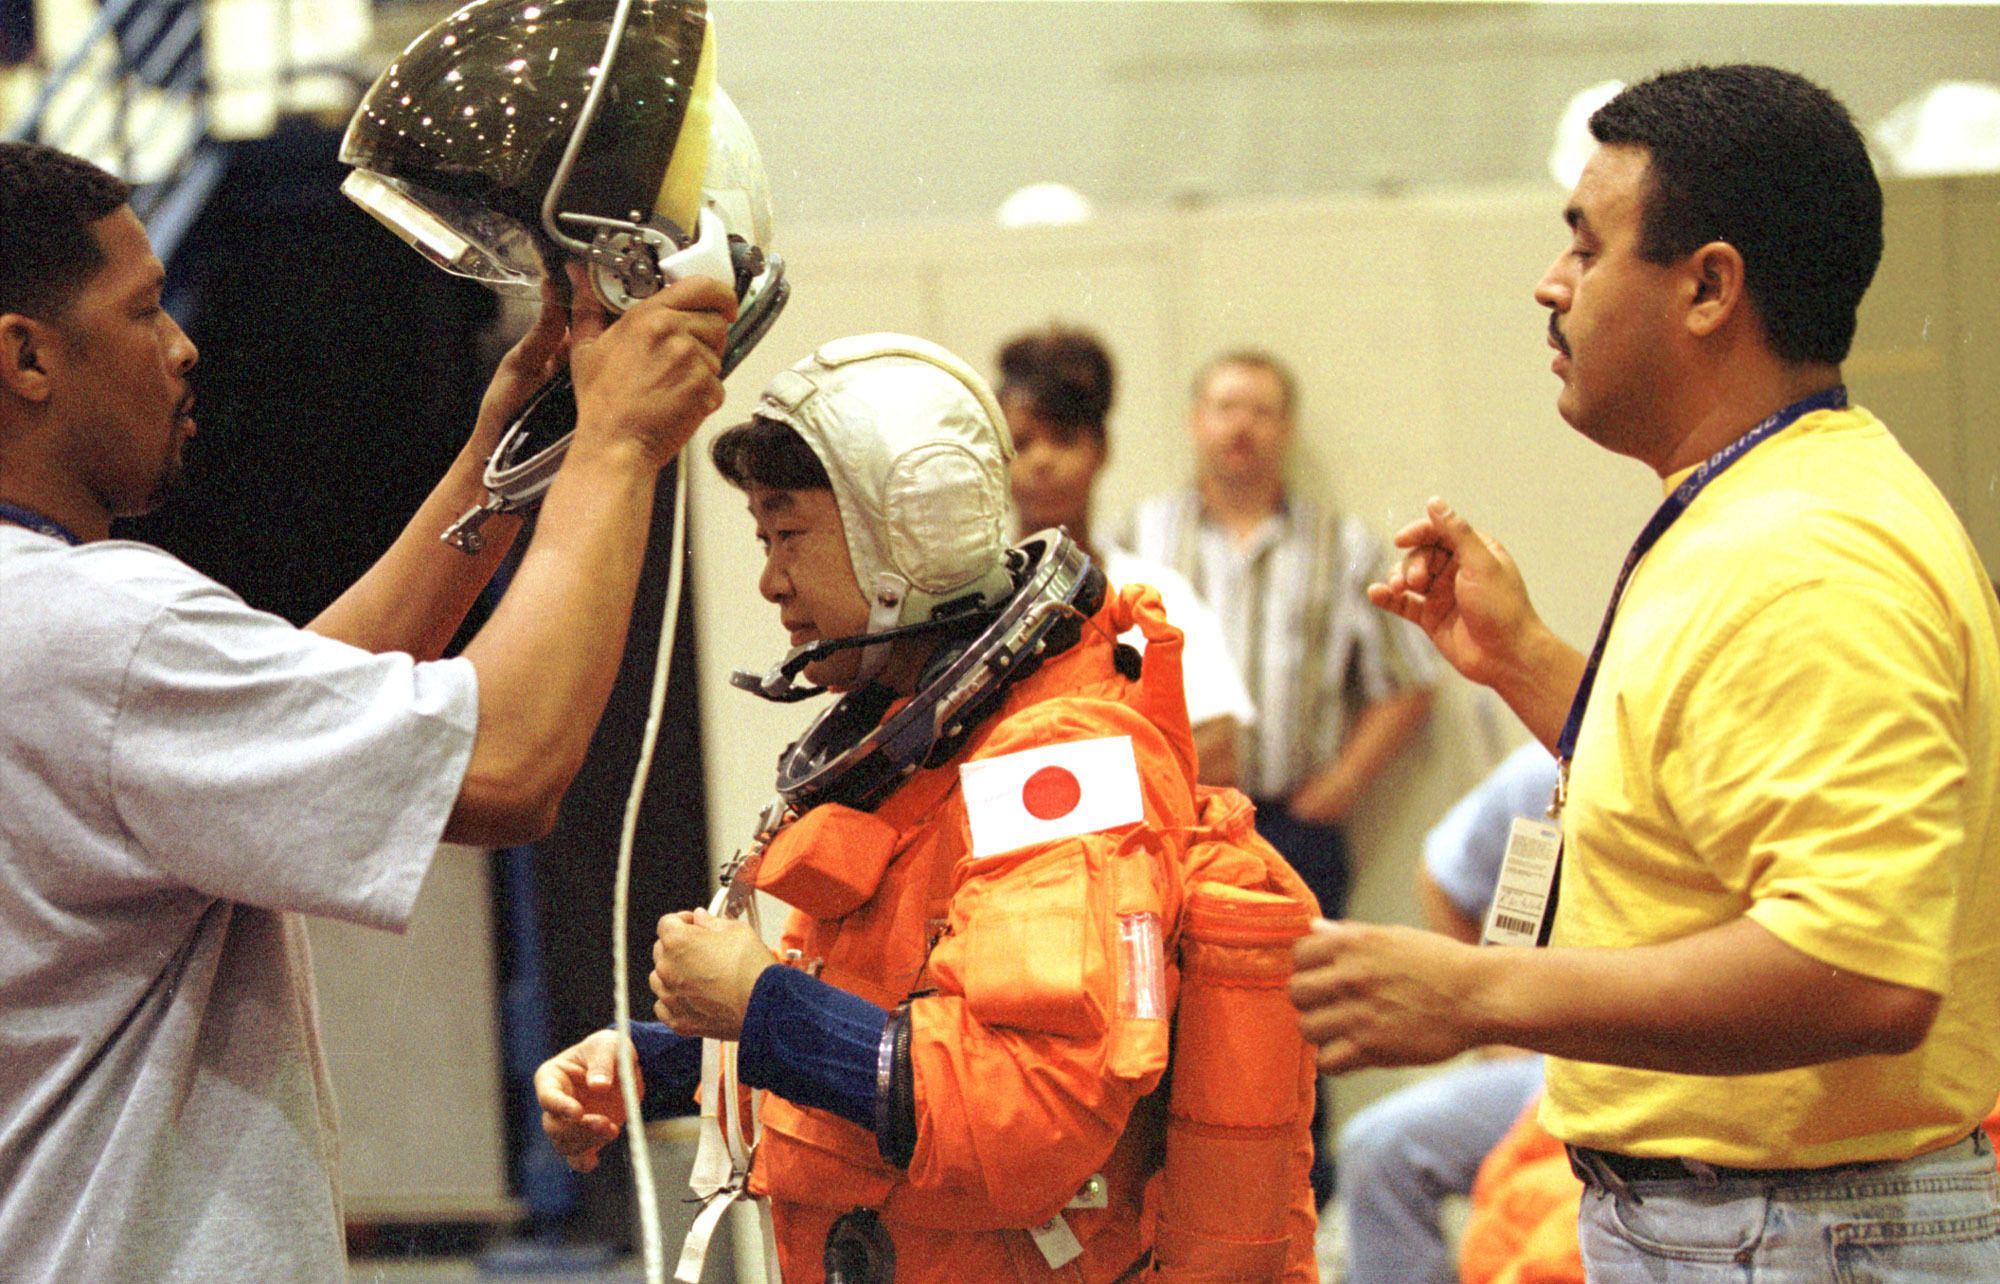 Japanese Astronaut Chiaki Mukai, Center, Is Helped Into Her Space Helmet By Nasa Technicians During Crew Escape Training Monday, June 1, 1998, At Nasa's Johnson Space Center In Houston. (Gamma Liaison  (Photo By Paul S. Howell/Getty Images)